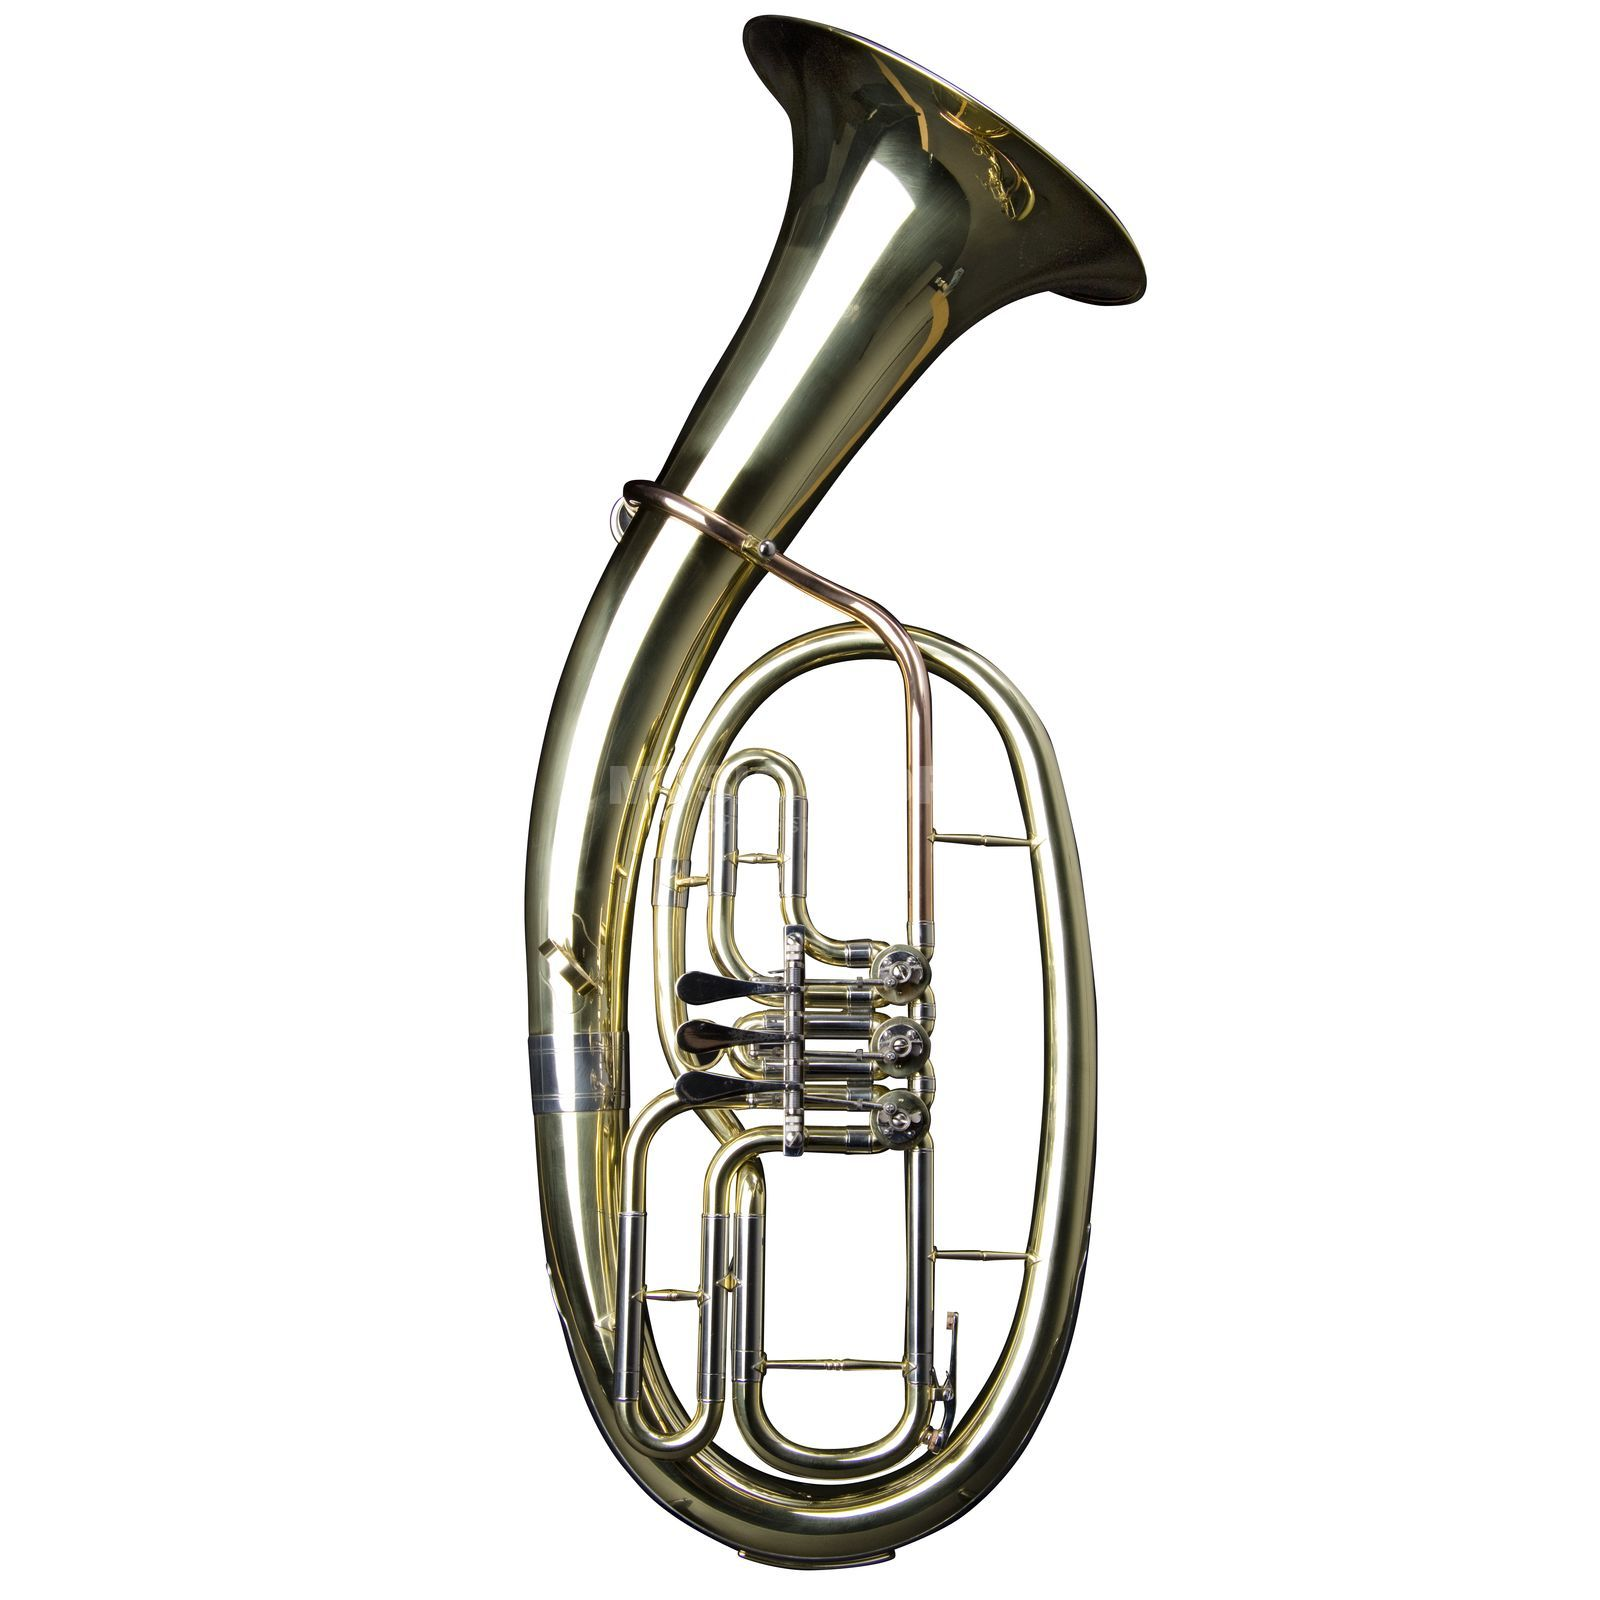 Monzani MZBR-1211L Bb-Tenorhorn messing, Lackiert, 3 Ventile Productafbeelding